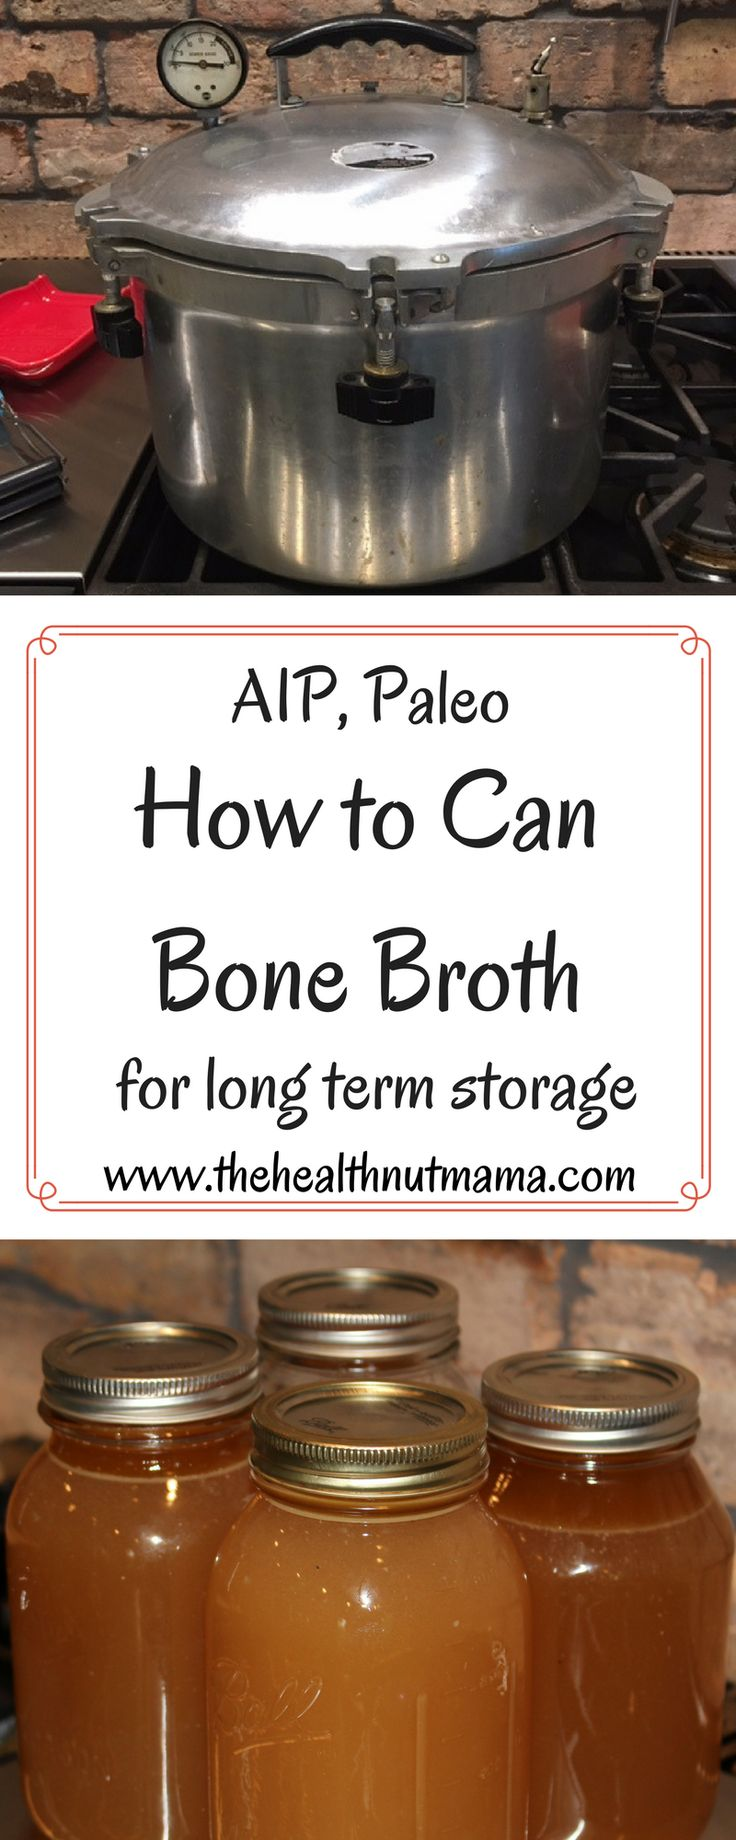 How to Can Bone Broth - The best way to preserve Bone Broth for long term storage - #canning #bonebroth #canningbonebroth #preserving #longtermstorage #leakygut www.thehealthnutmama.com